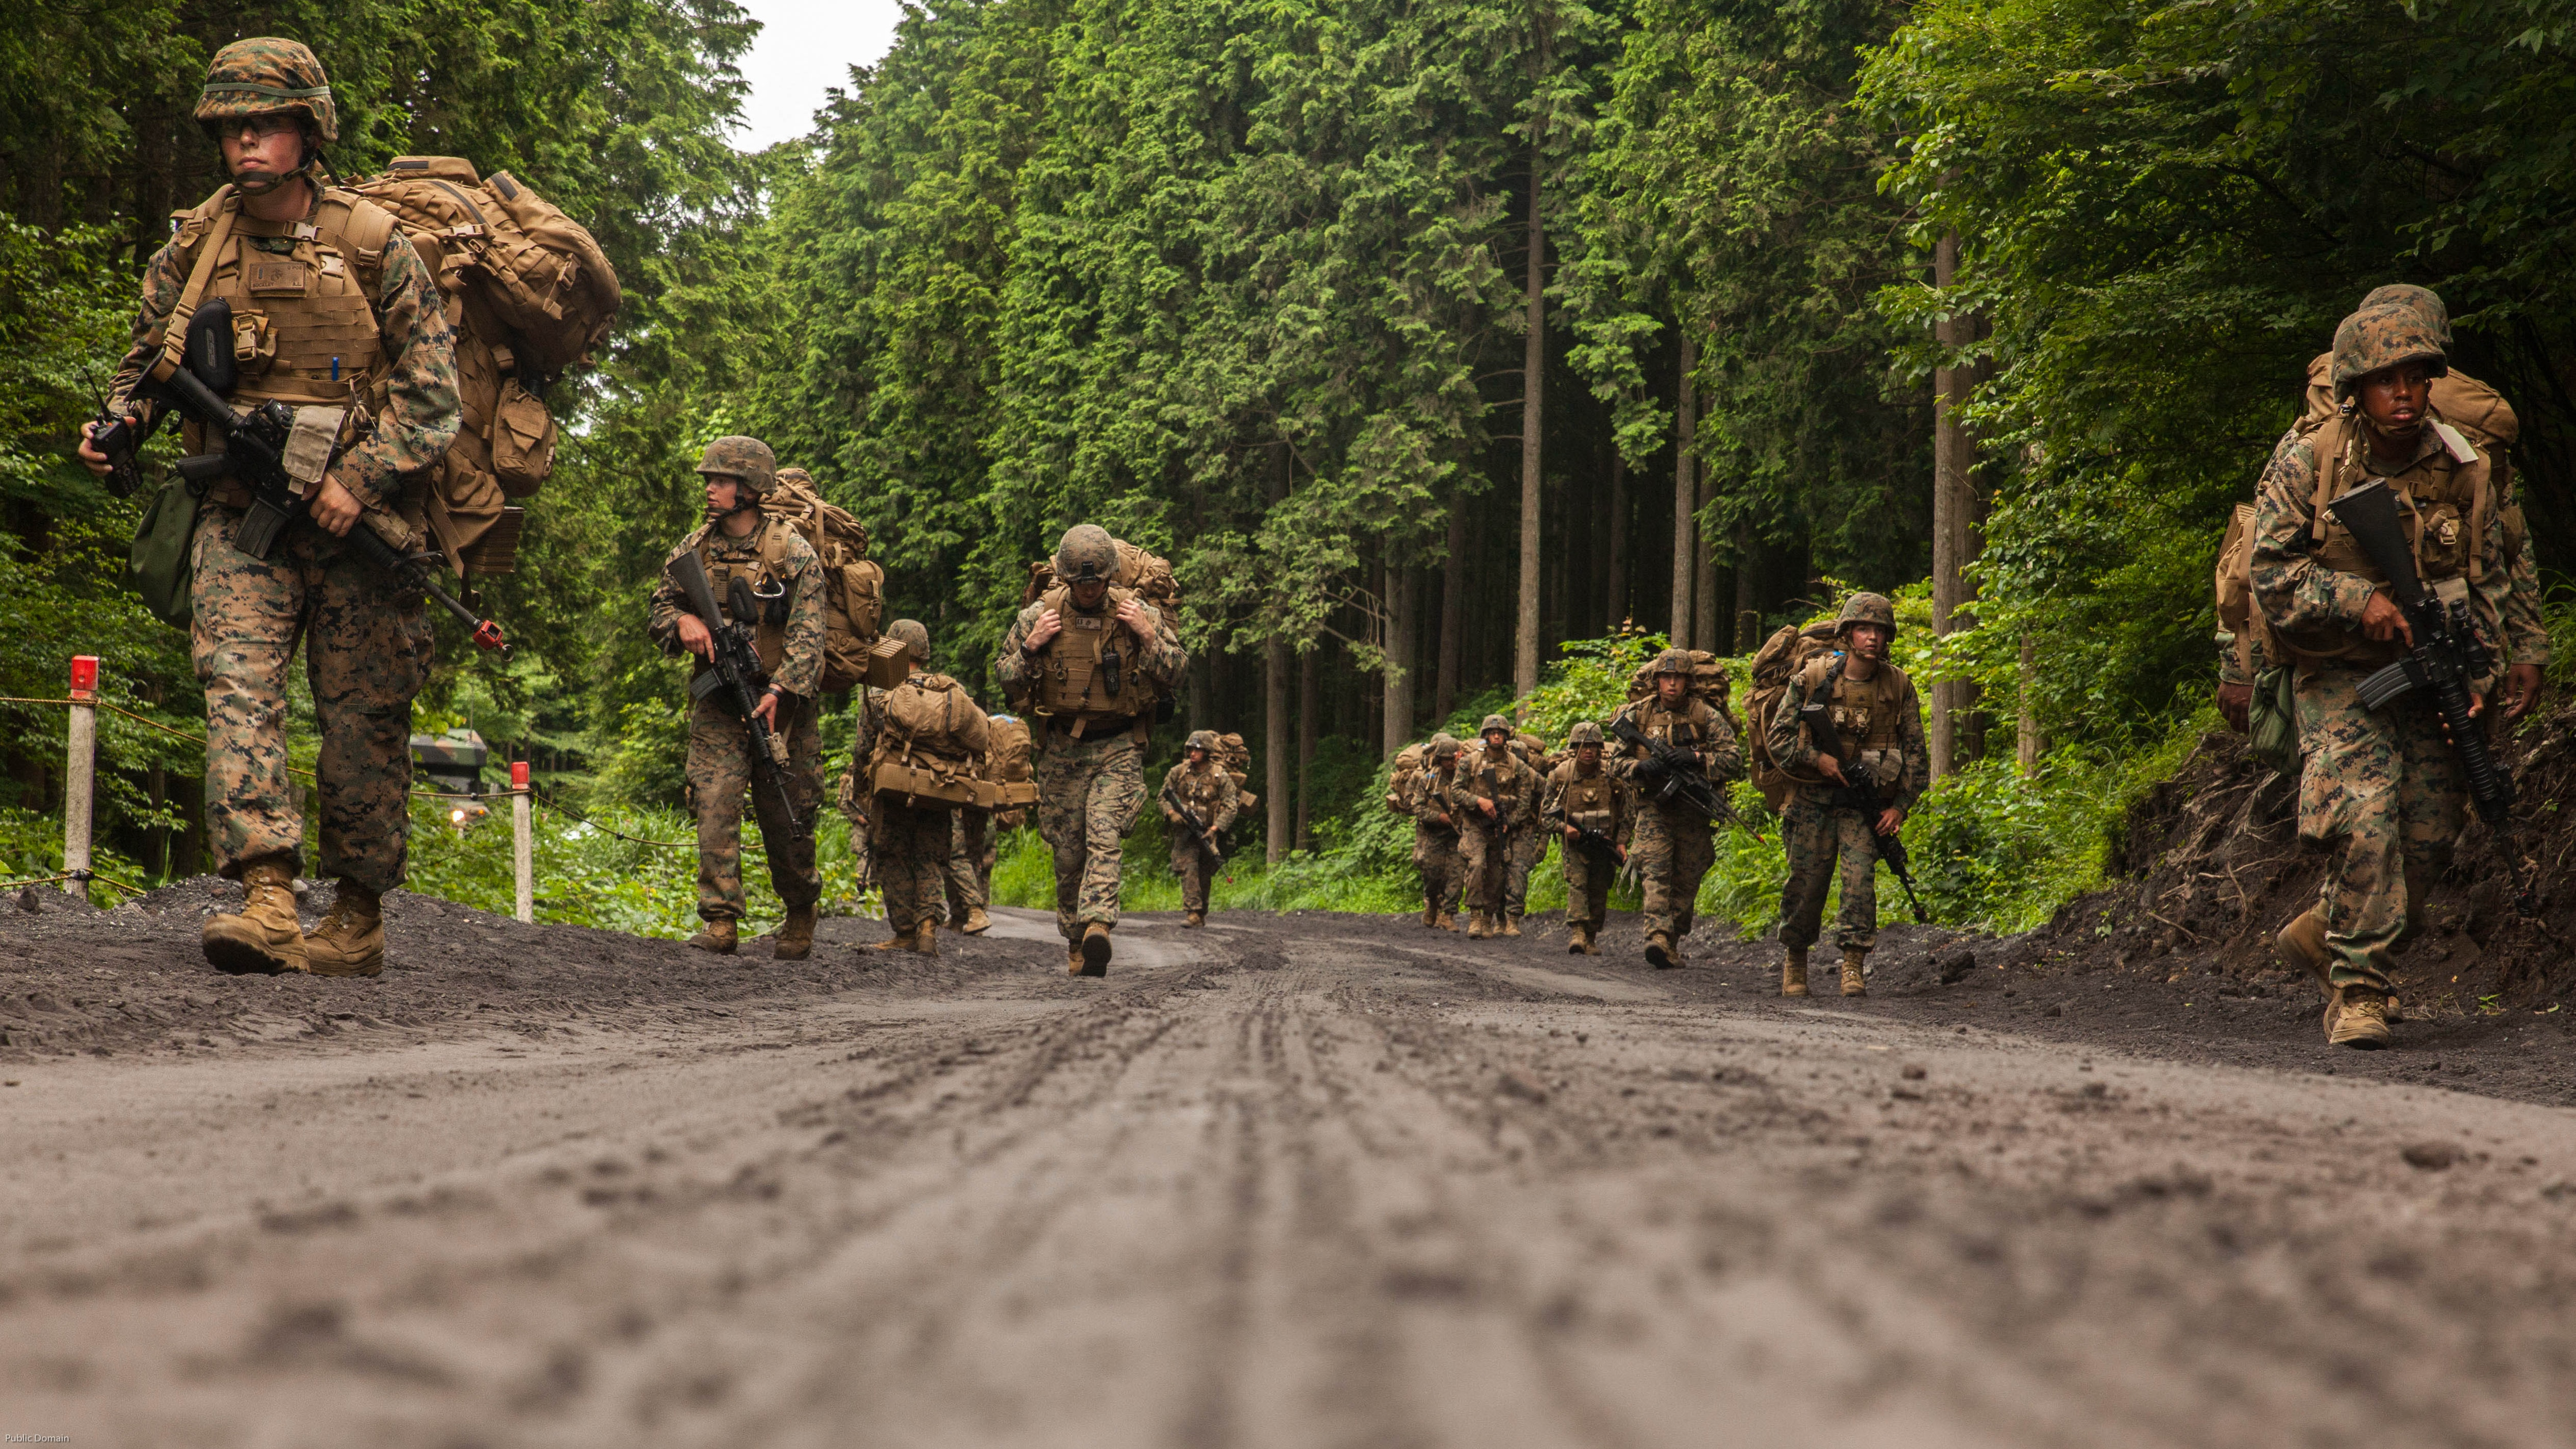 marines requirements for infantry officers are